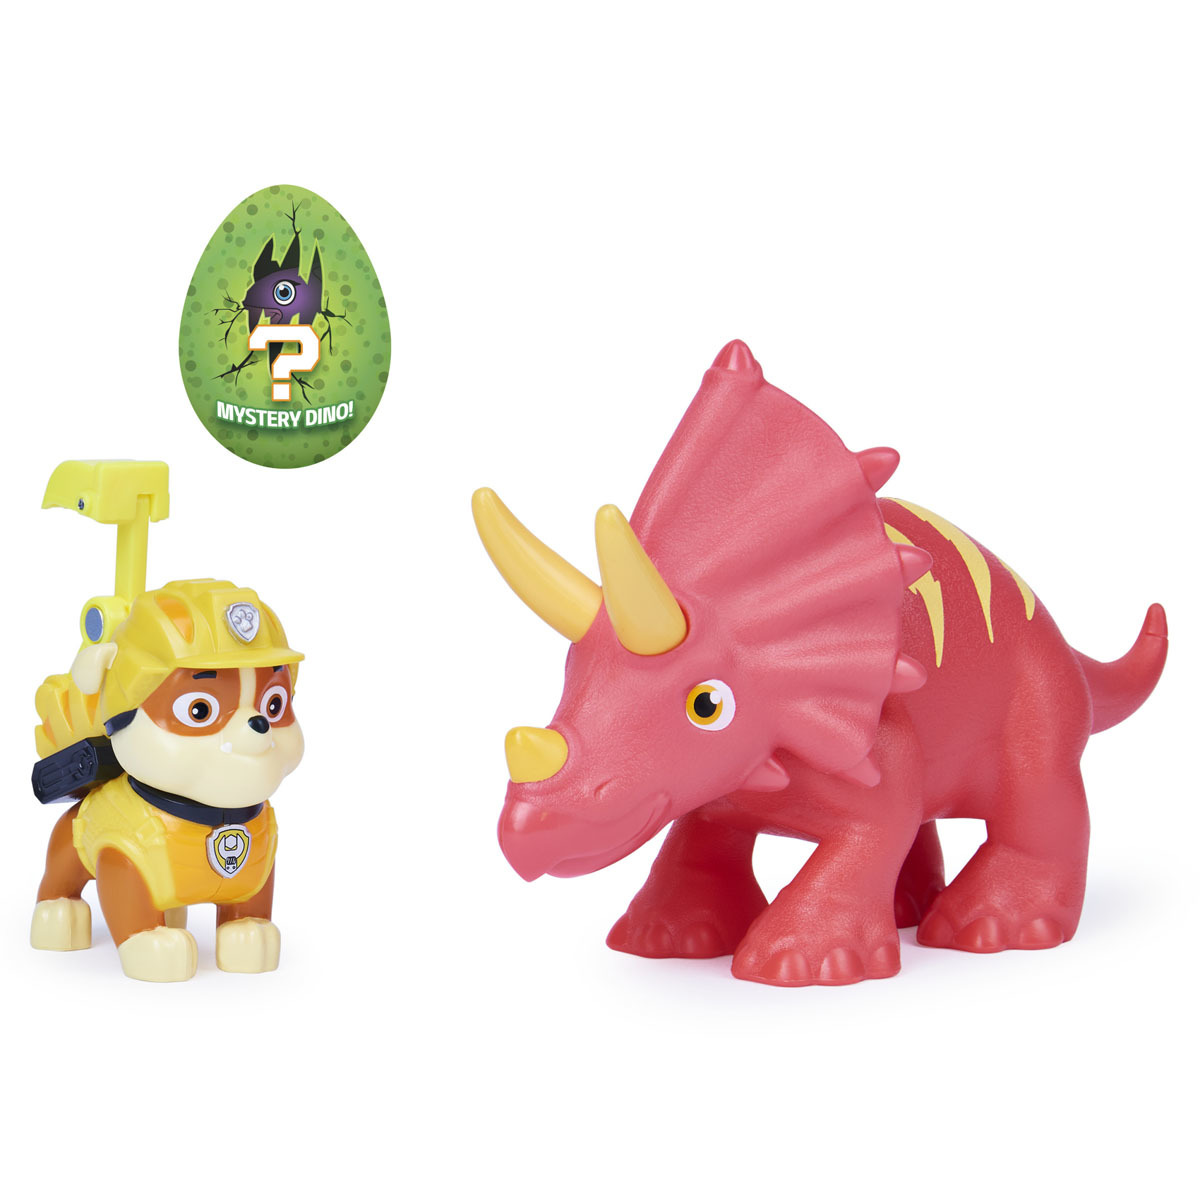 Paw Patrol Dino Rescue Figures and Mystery Dinosaur - Rubble and Triceratops from Early Learning Center